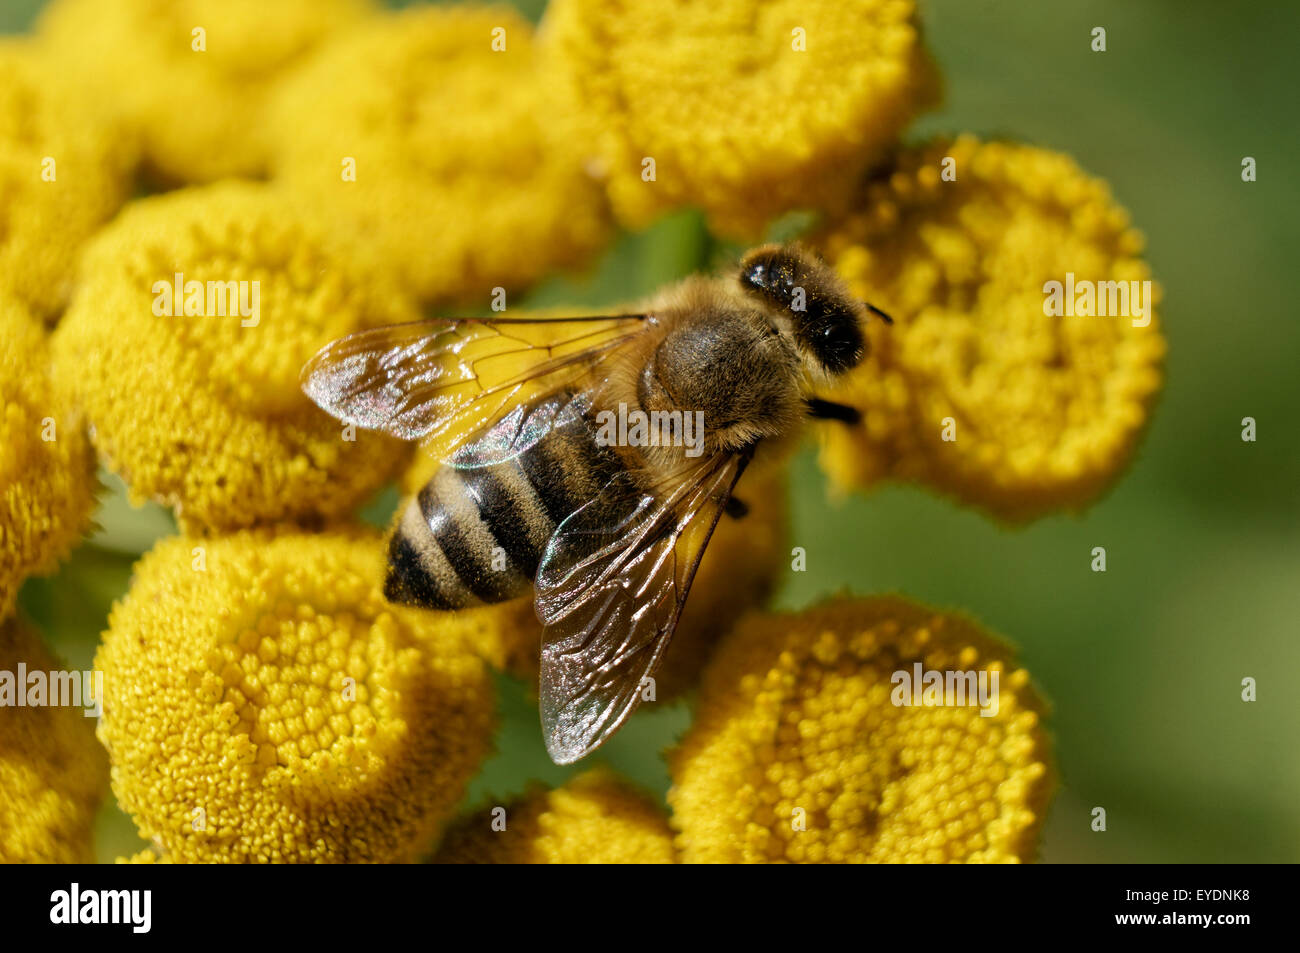 A western honeybee or European honey bee gathering pollen on Common tansy (Tanacetum vulgare) flowers, Vancouver, - Stock Image